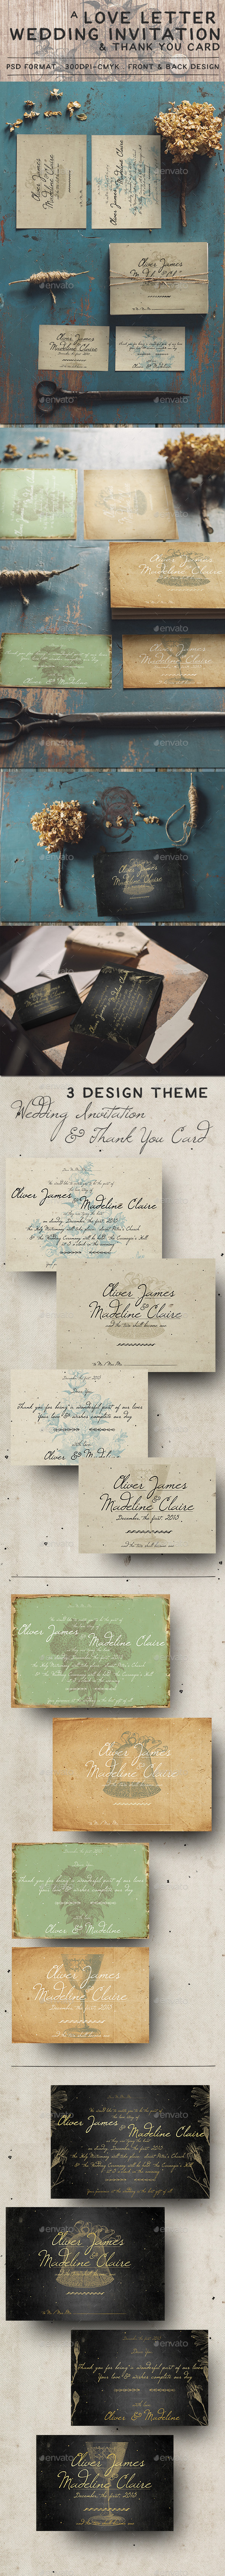 GraphicRiver Love Letter Wedding Invitation 11871782